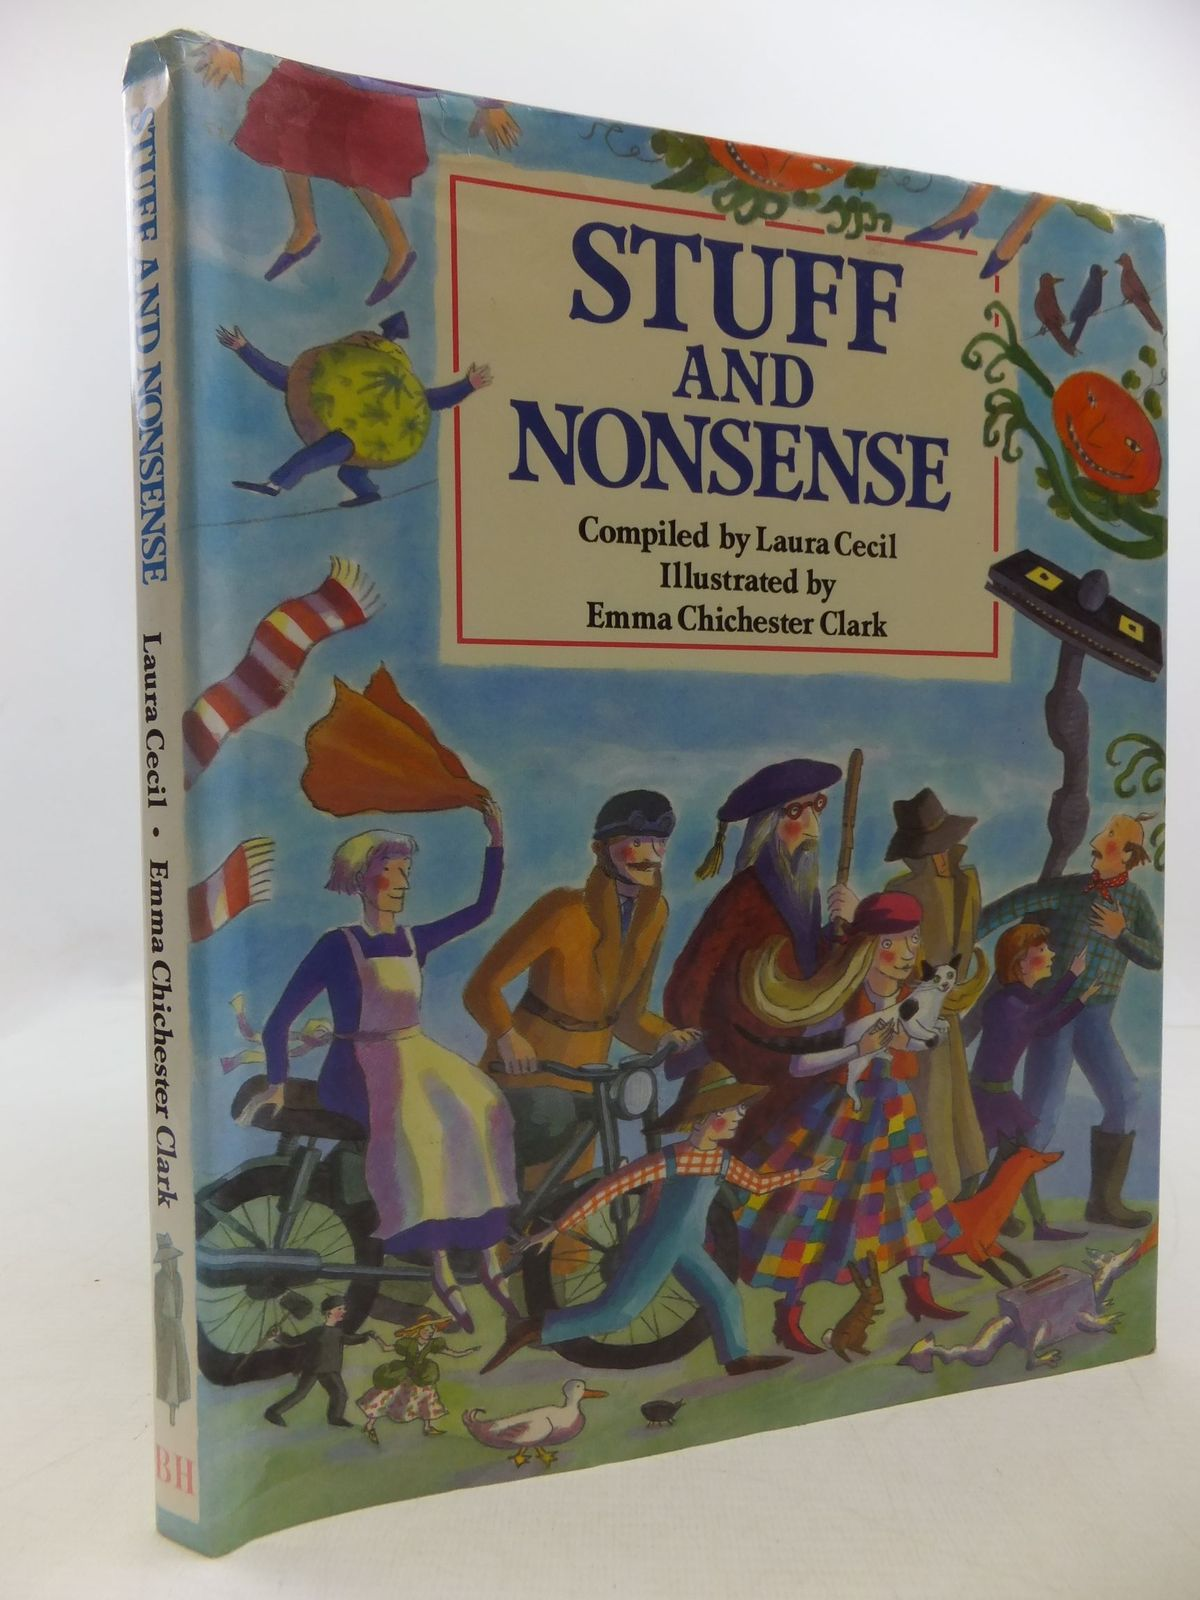 Photo of STUFF AND NONSENSE written by Cecil, Laura illustrated by Clark, Emma Chichester published by The Bodley Head (STOCK CODE: 2112374)  for sale by Stella & Rose's Books